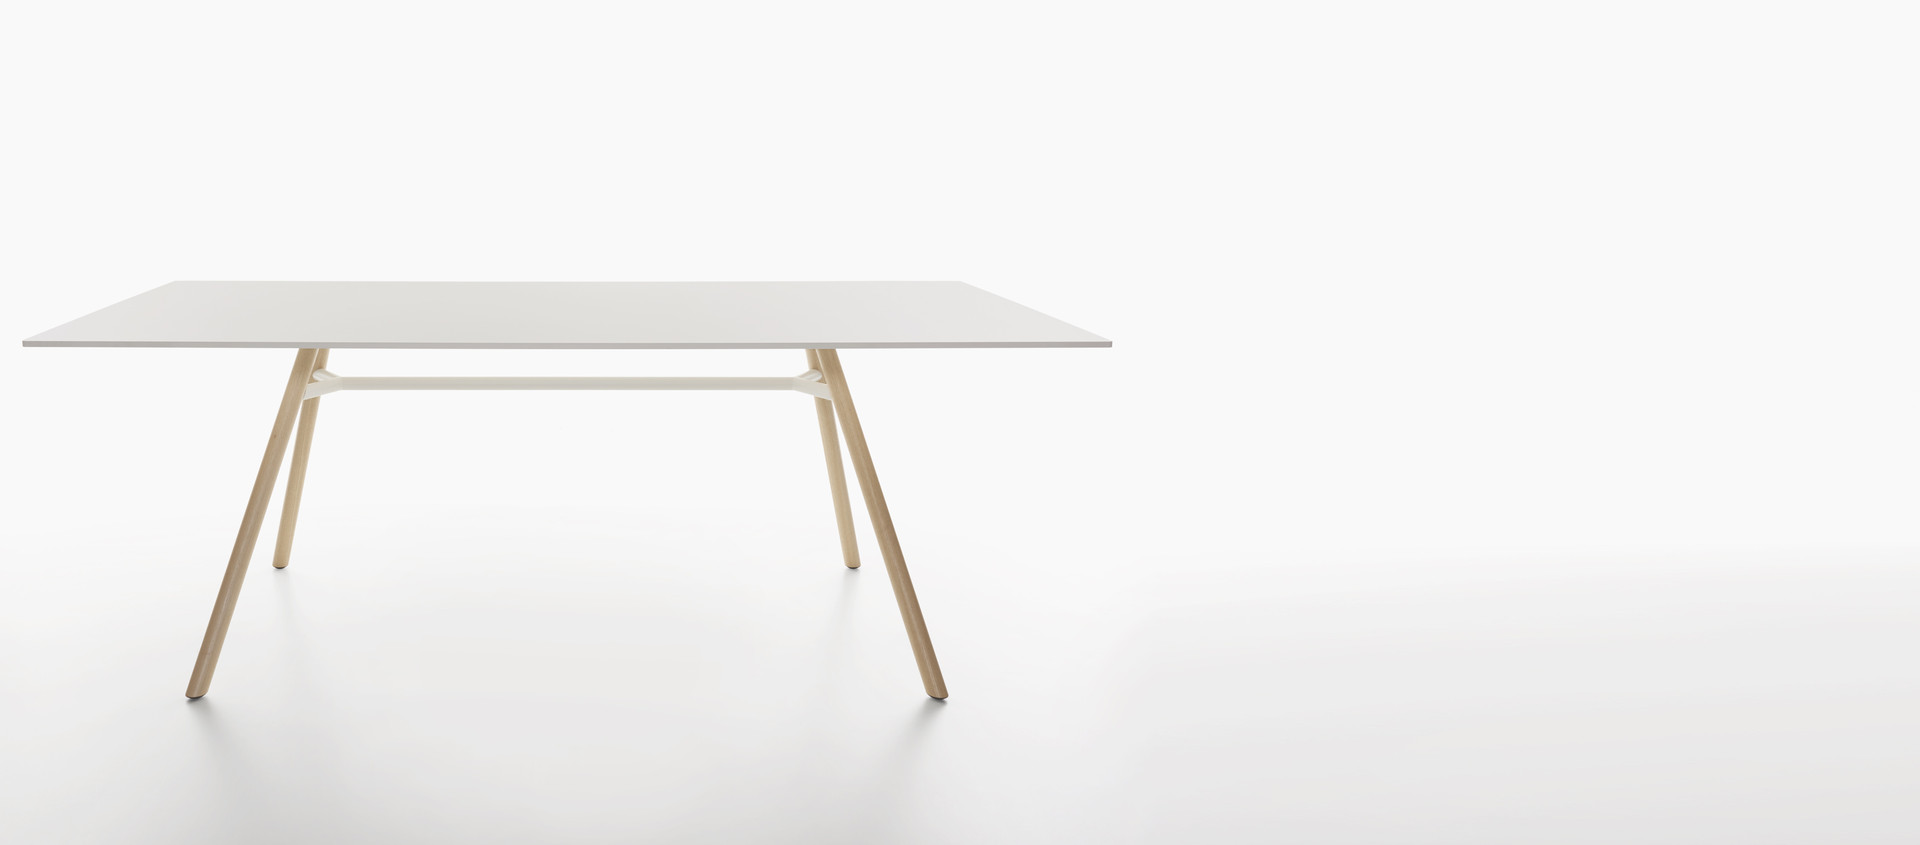 HERO - Plank, MART table, rectangular table top